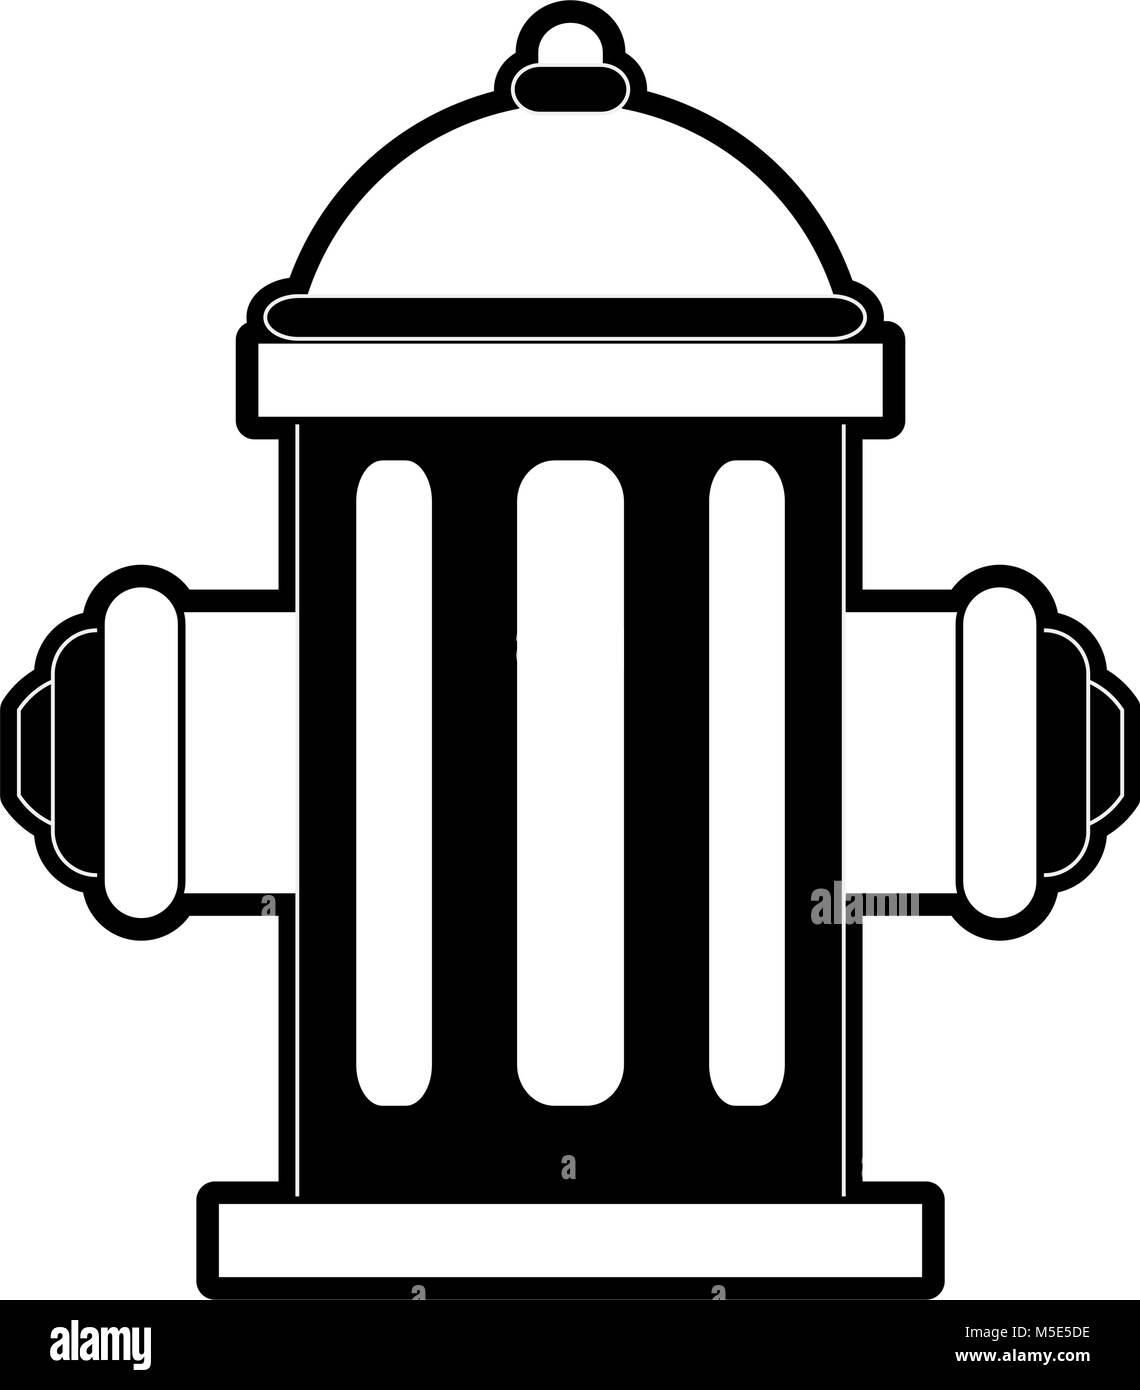 water hydrant icon image - Stock Vector